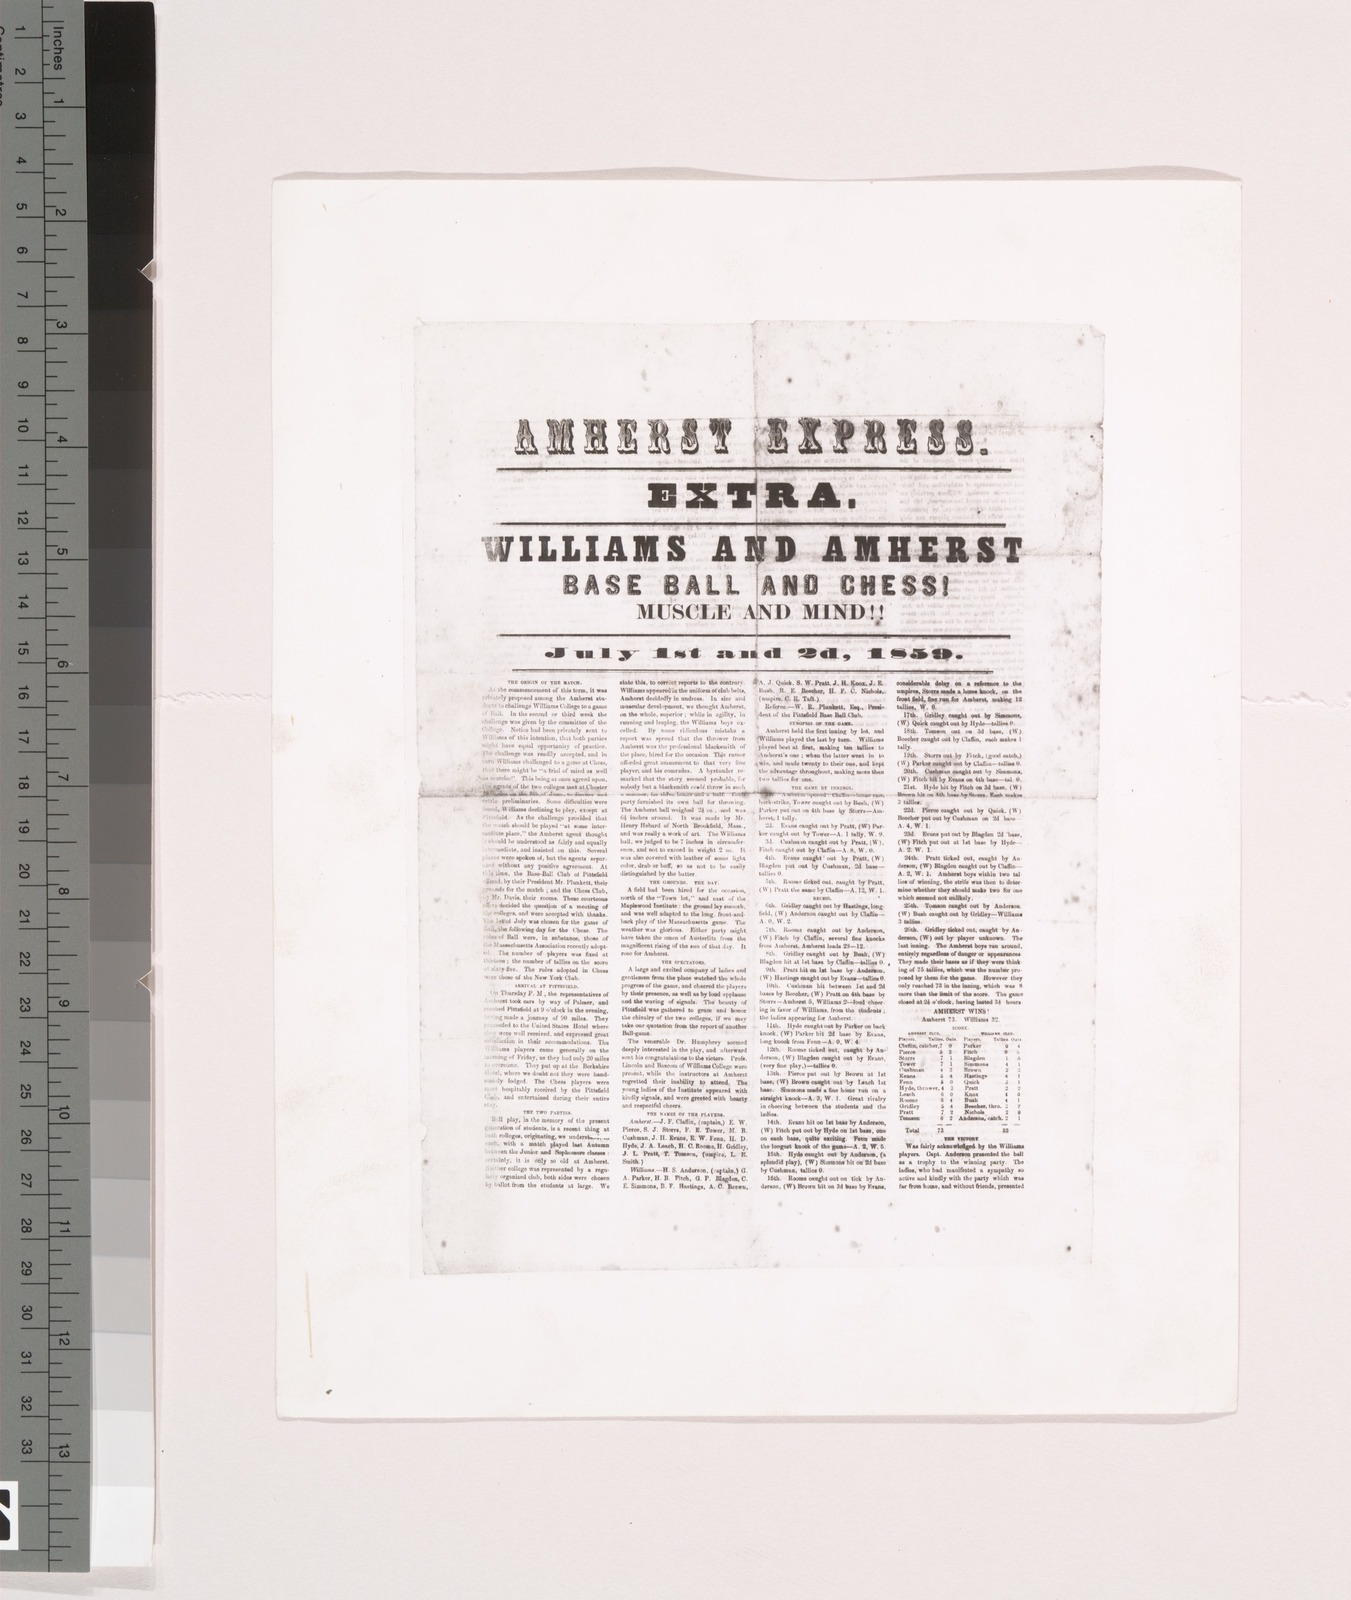 Photo of Amherst Express, Extra, Williams and Amherst, Baseball and Chess, Muscle and Mind, July 1st and 2nd, 1859